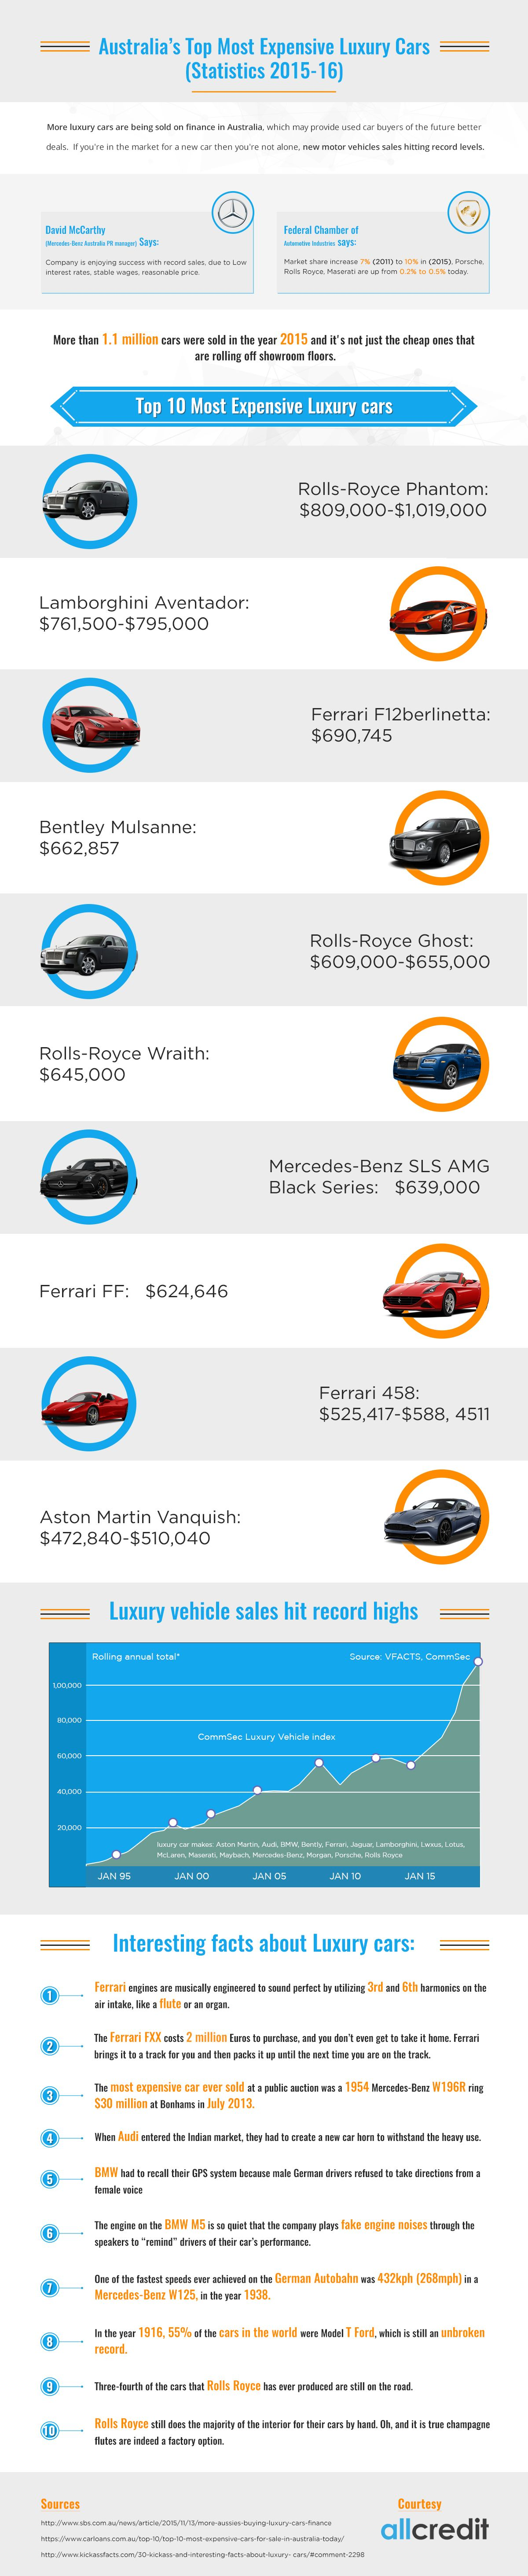 Top 10 Most Expensive Luxury Car brands in Australia 2015-2016